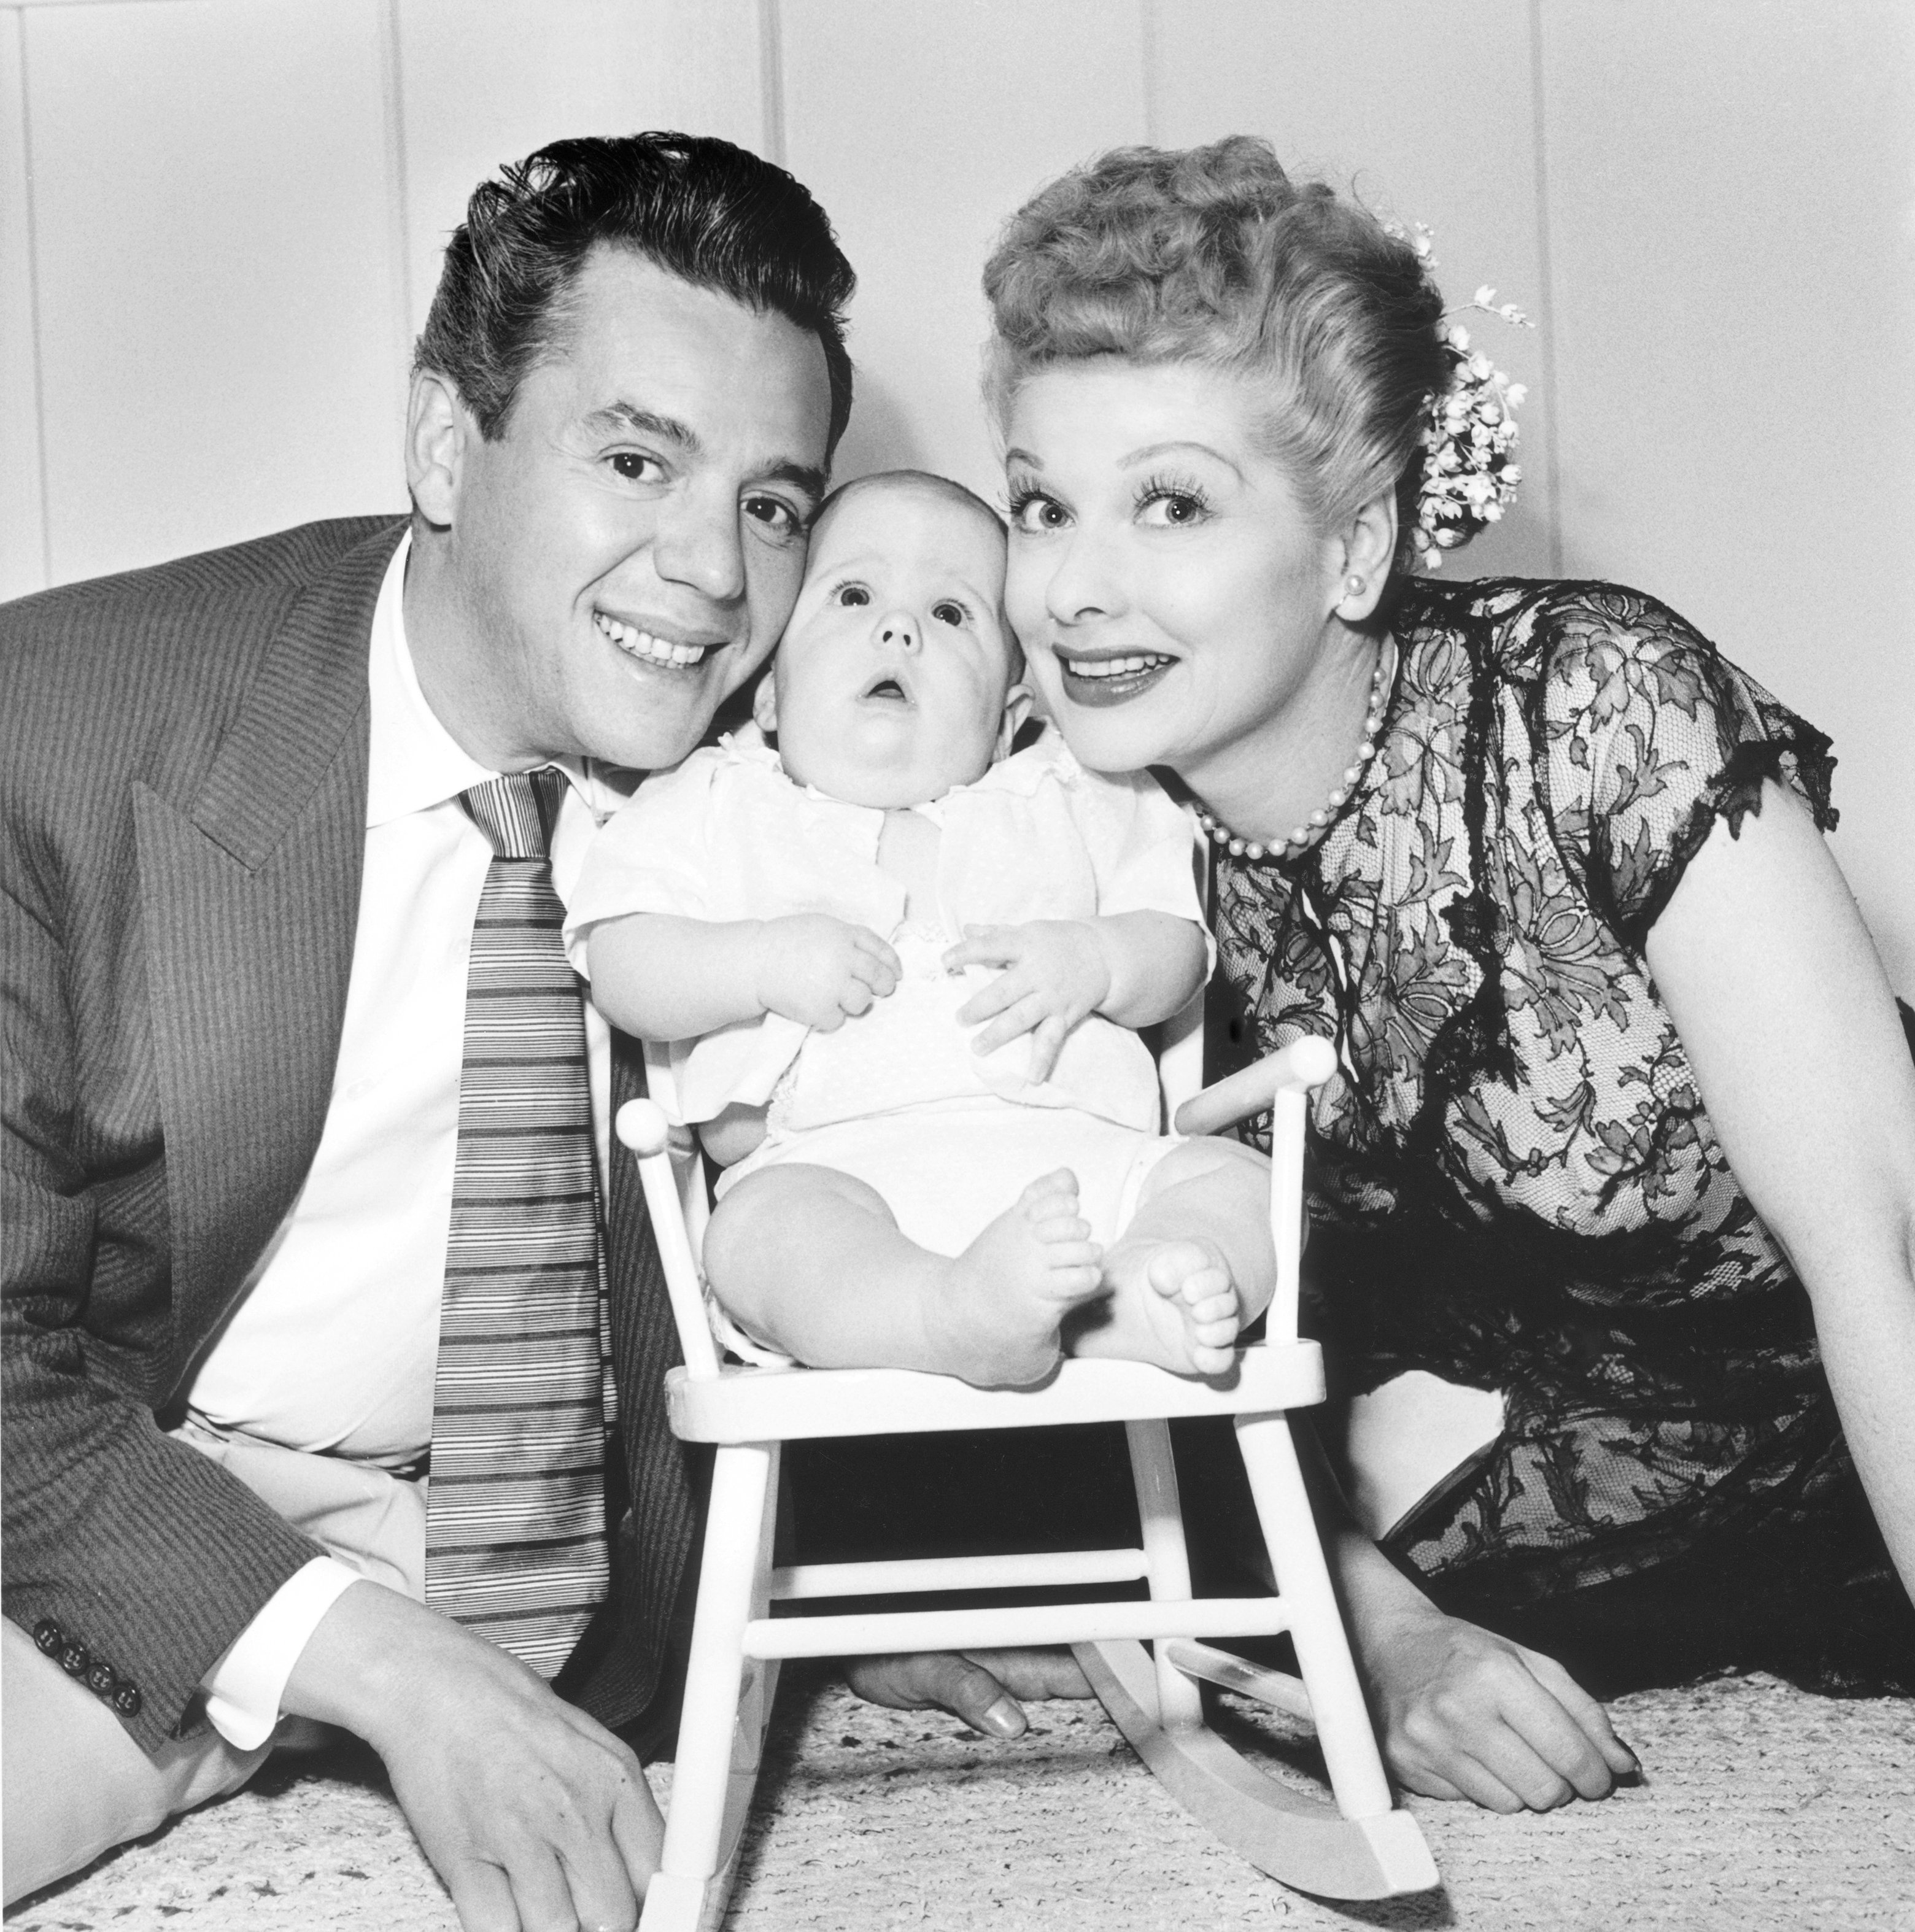 Desi Arnaz and Lucille Ball with their son Desi Arnaz Jr. at their home in California in 1953 | Source: Getty Images